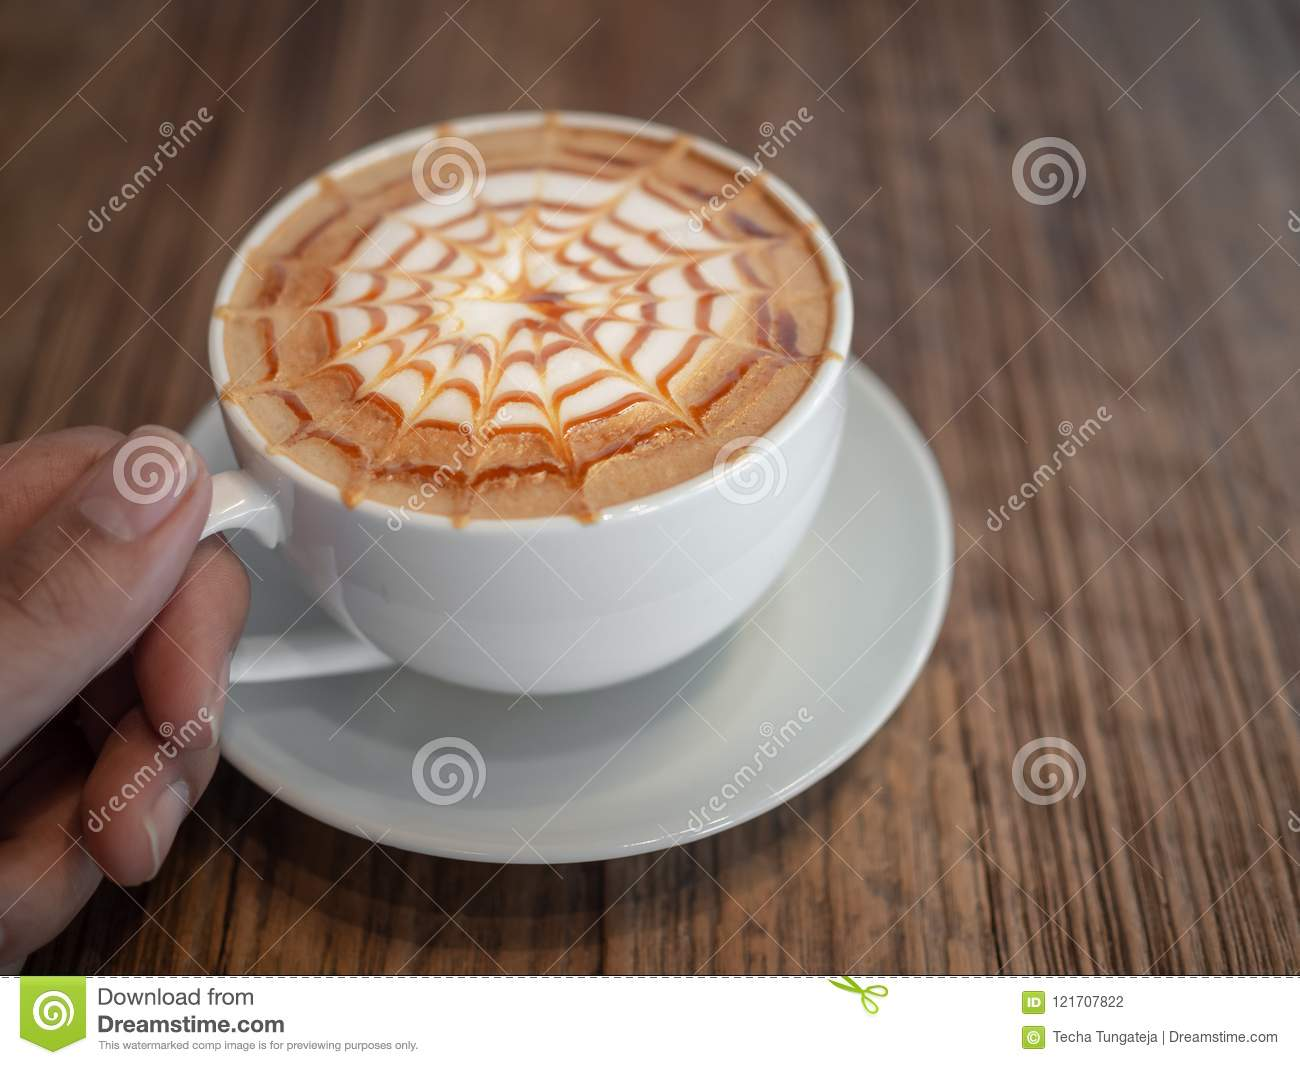 Macchiato Caramel Caramel Macchiato Stock Photo Image Of Breakfast Happy 121707822